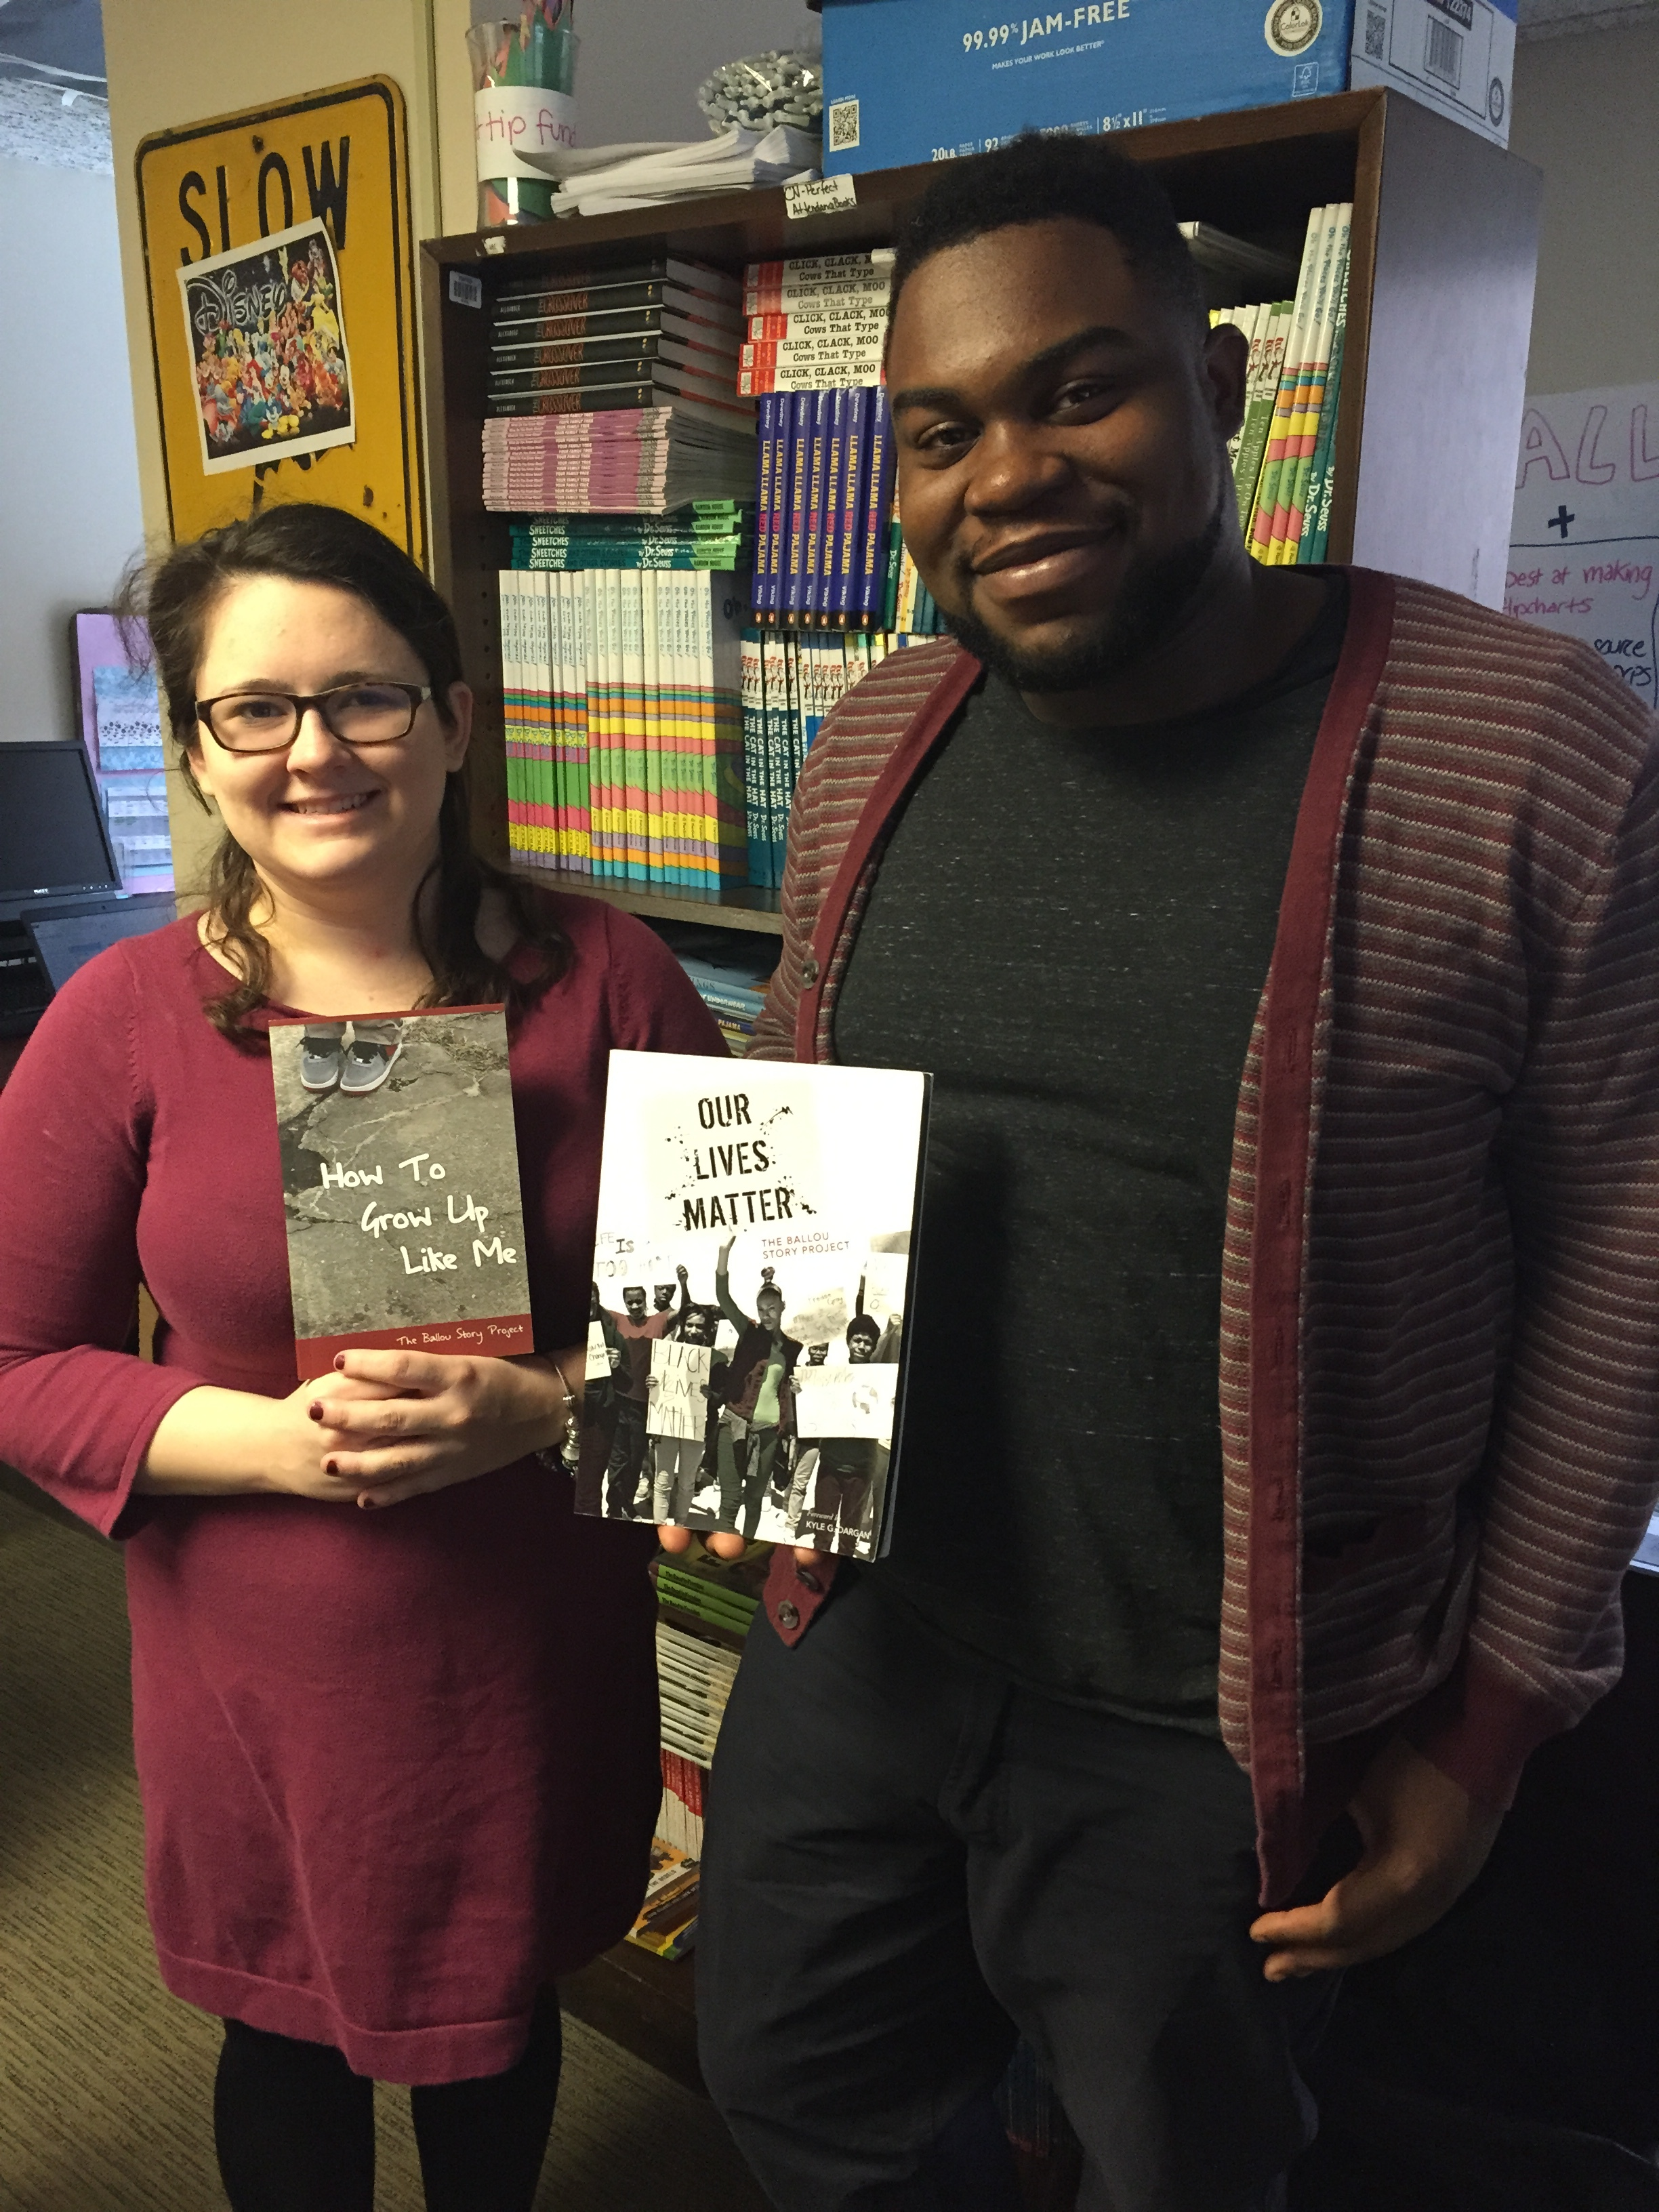 Jennifer Parisi and Vvdaul Holloway are two AmeriCorps VISTA fellows who read the Ballou Story Project collection  as part of their training for Turning the Page.